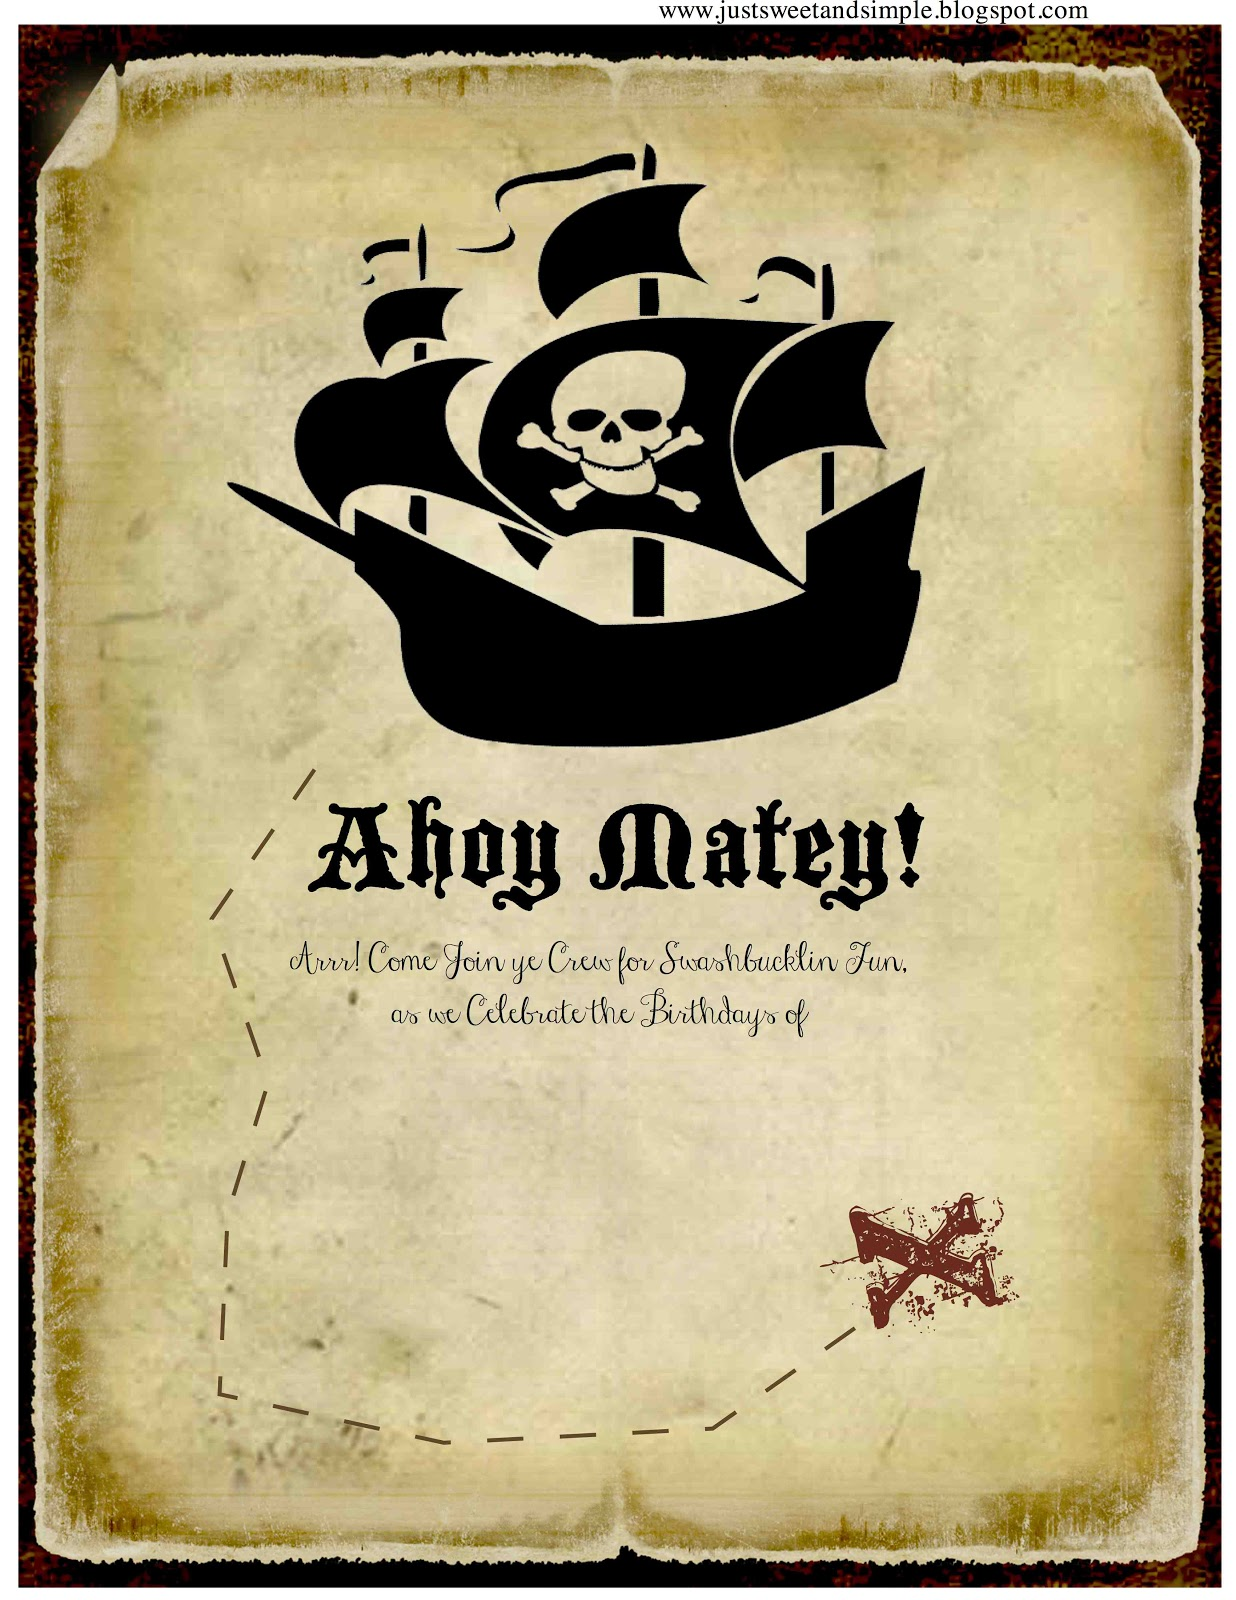 just Sweet and Simple Pirate Party Invitations – Free Pirate Party Invitations